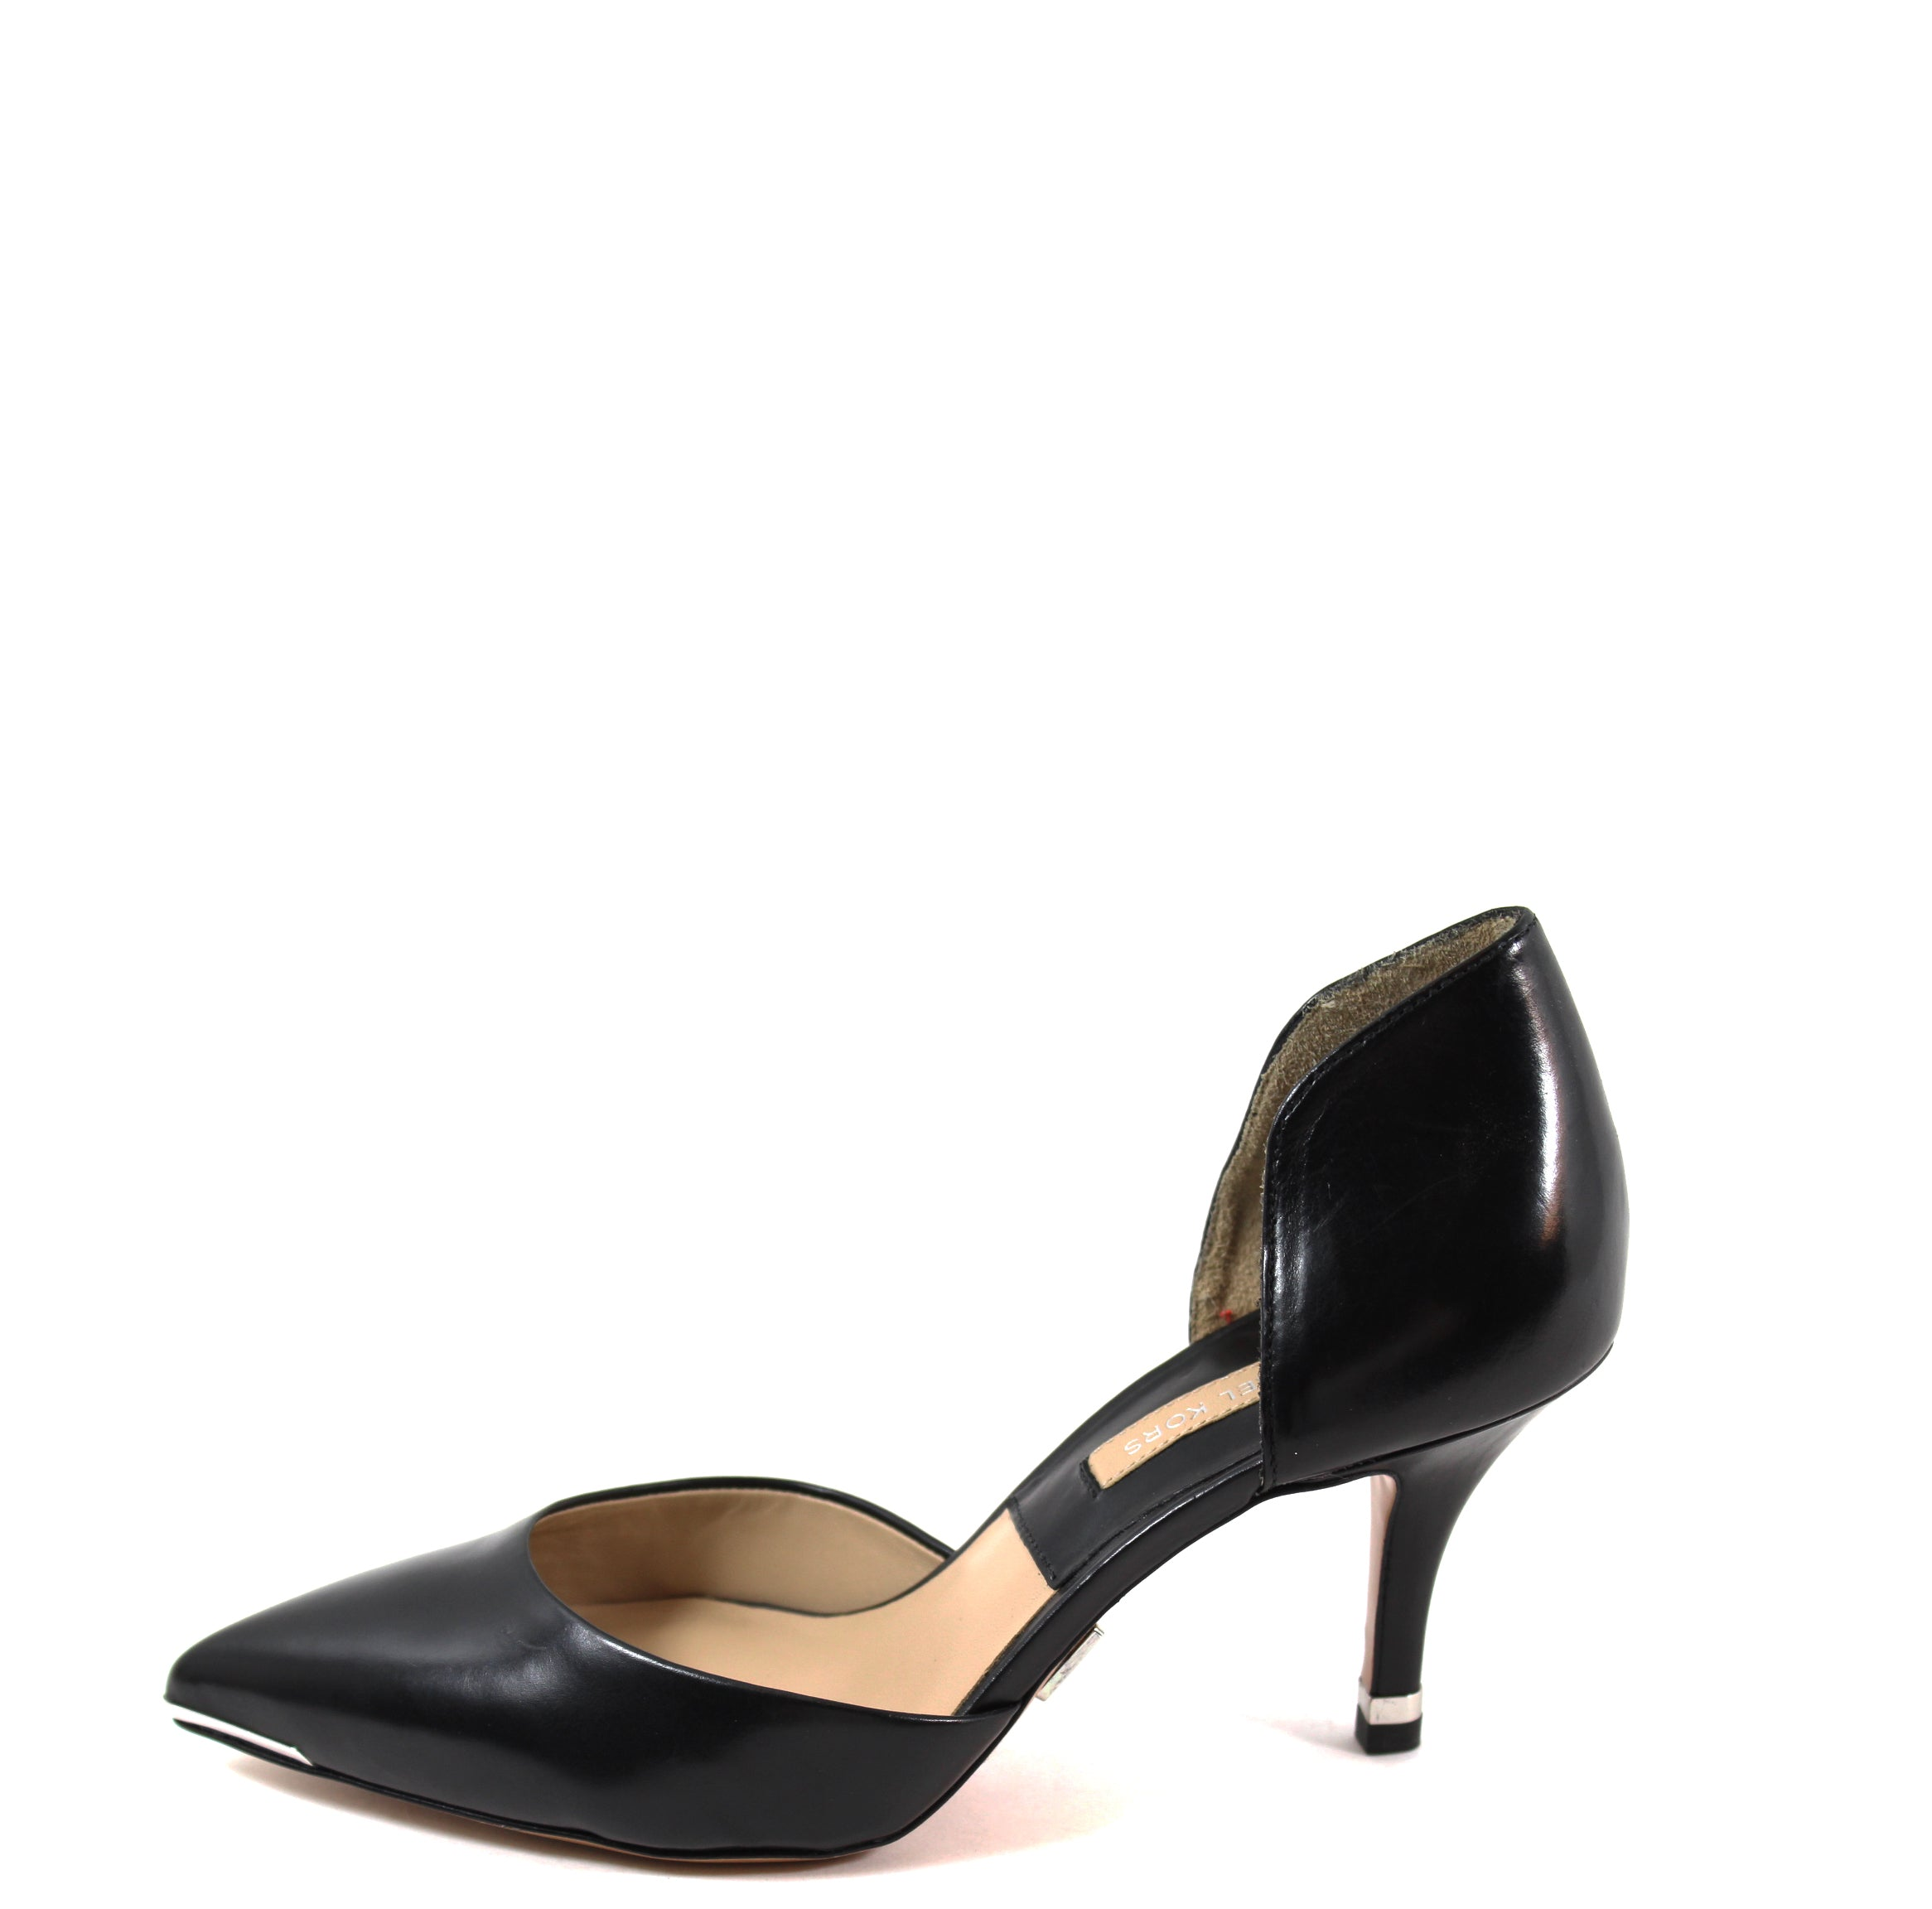 ef236d034d7b Michael Kors Black Leather d Orsay Pumps (Size 36) – Encore Resale.com